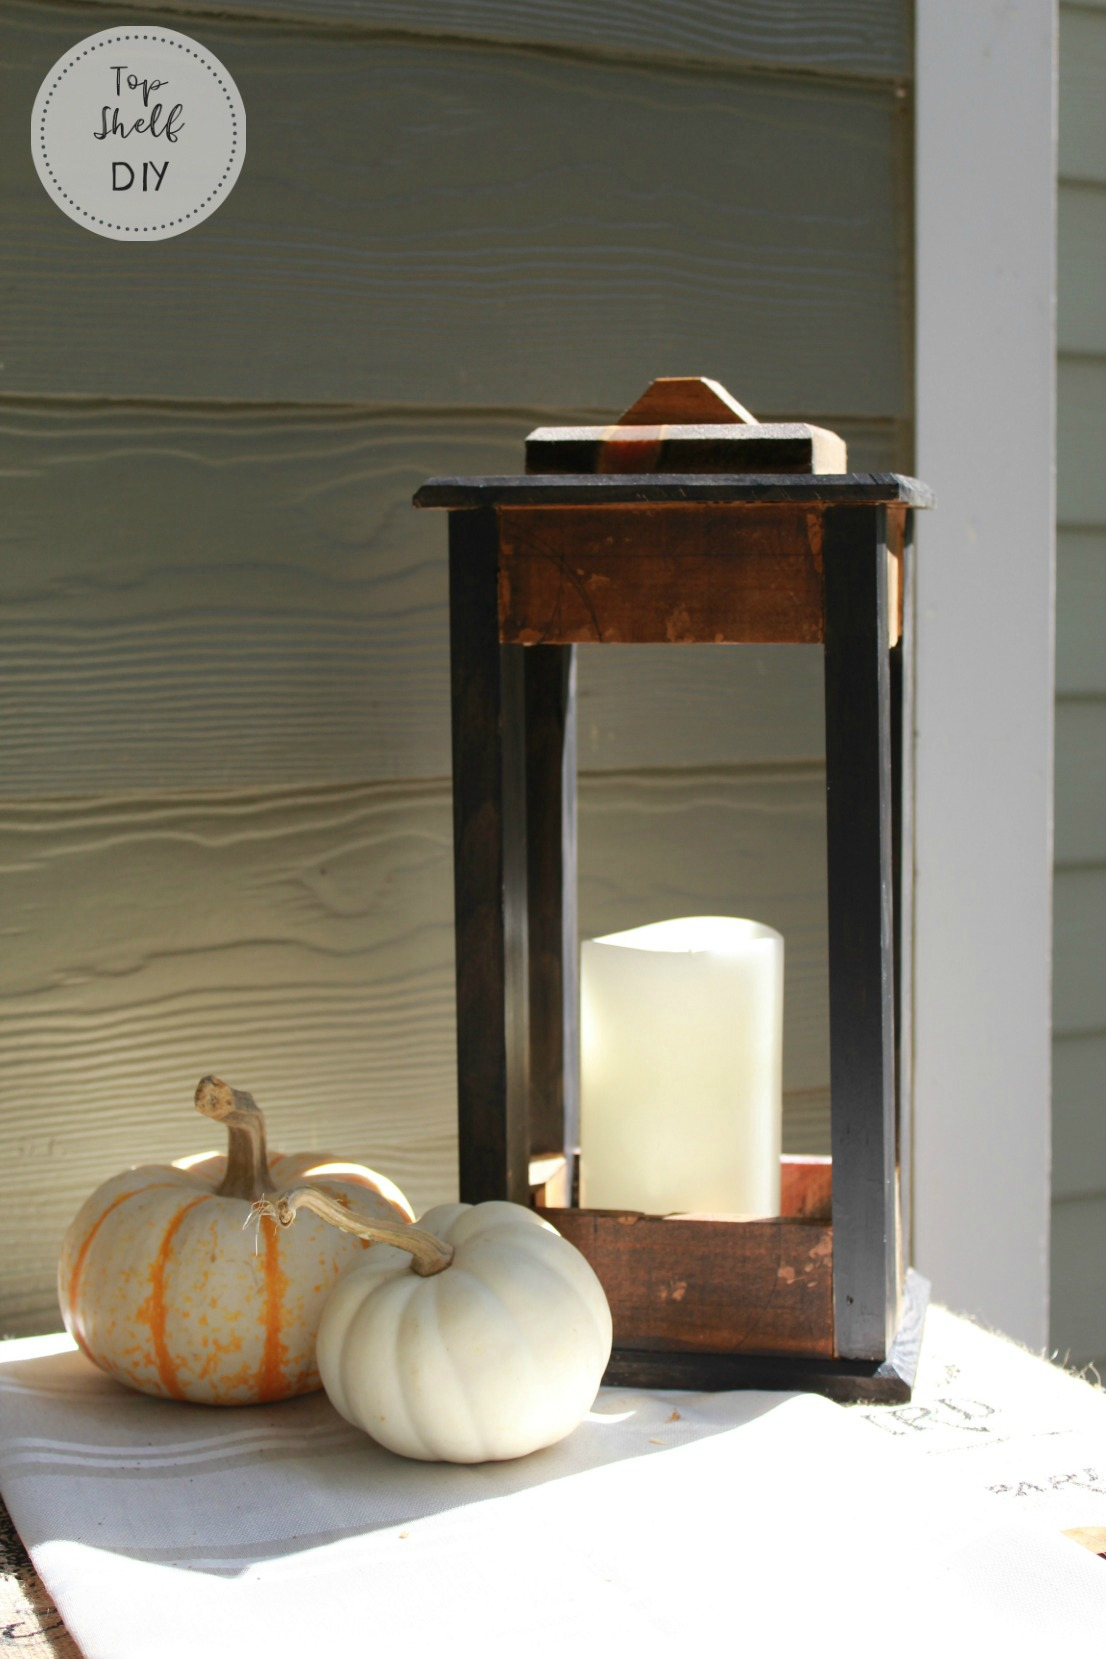 Make this lantern from a repurposed wine crate!